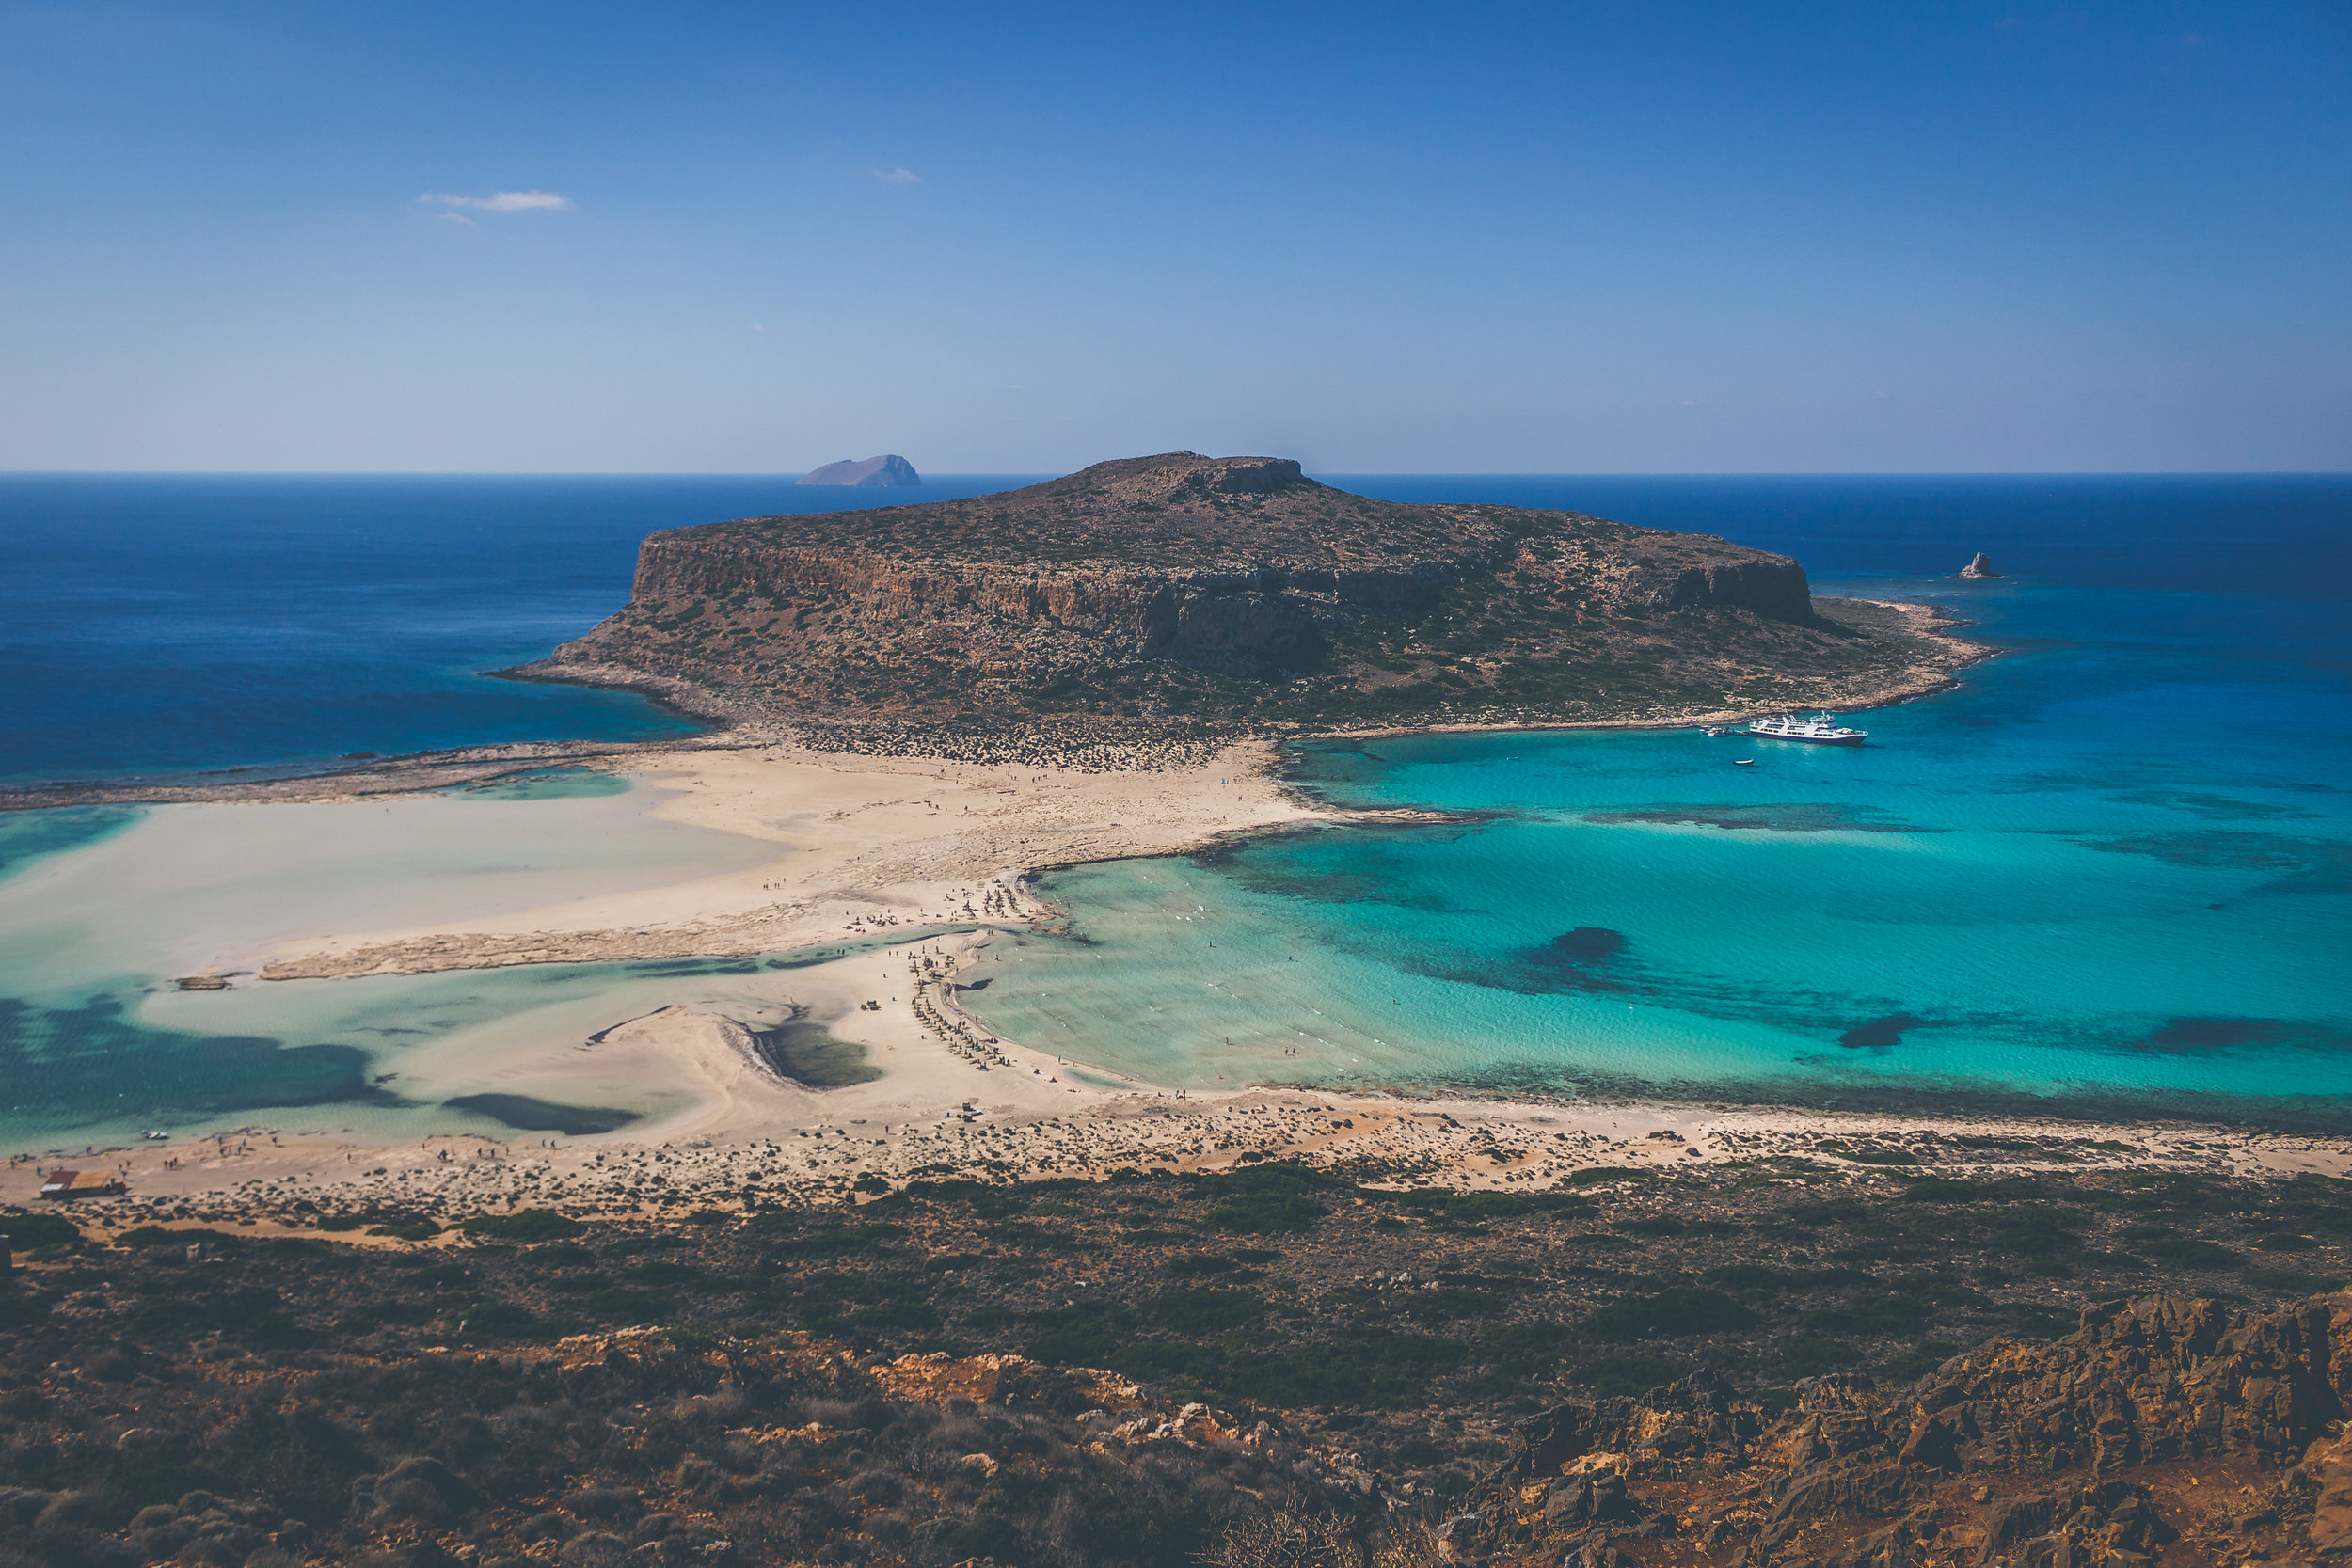 Yacht Cruise to Balos   • A cruise on a luxury 50 foot Ferreti motor yacht starts from Chania port and in 90 minutes, with a speed of 20-25 knots, takes you to the azure waters of Balos, a world known Cretan landmark and one of most photographed spots on the island.  • Reaching the islet of Gramvousa, you can walk up the small path leading to the top and enjoy the stunning view of the Venetian castle and the breathtaking outlook towards the west and the lagoon.  • You will swim in the crystal sea away from the crowds and when back on board you will enjoy a light lunch with wine and refreshments.  • Heading back towards Chania we will sail around the islet of Theodorou, a reserve for the rare Cretan wild goat, before our return in the old harbor in the evening.   Tour Time:  Approximately 9 hours   Group Size:  Available as a private charter for up to 8 people